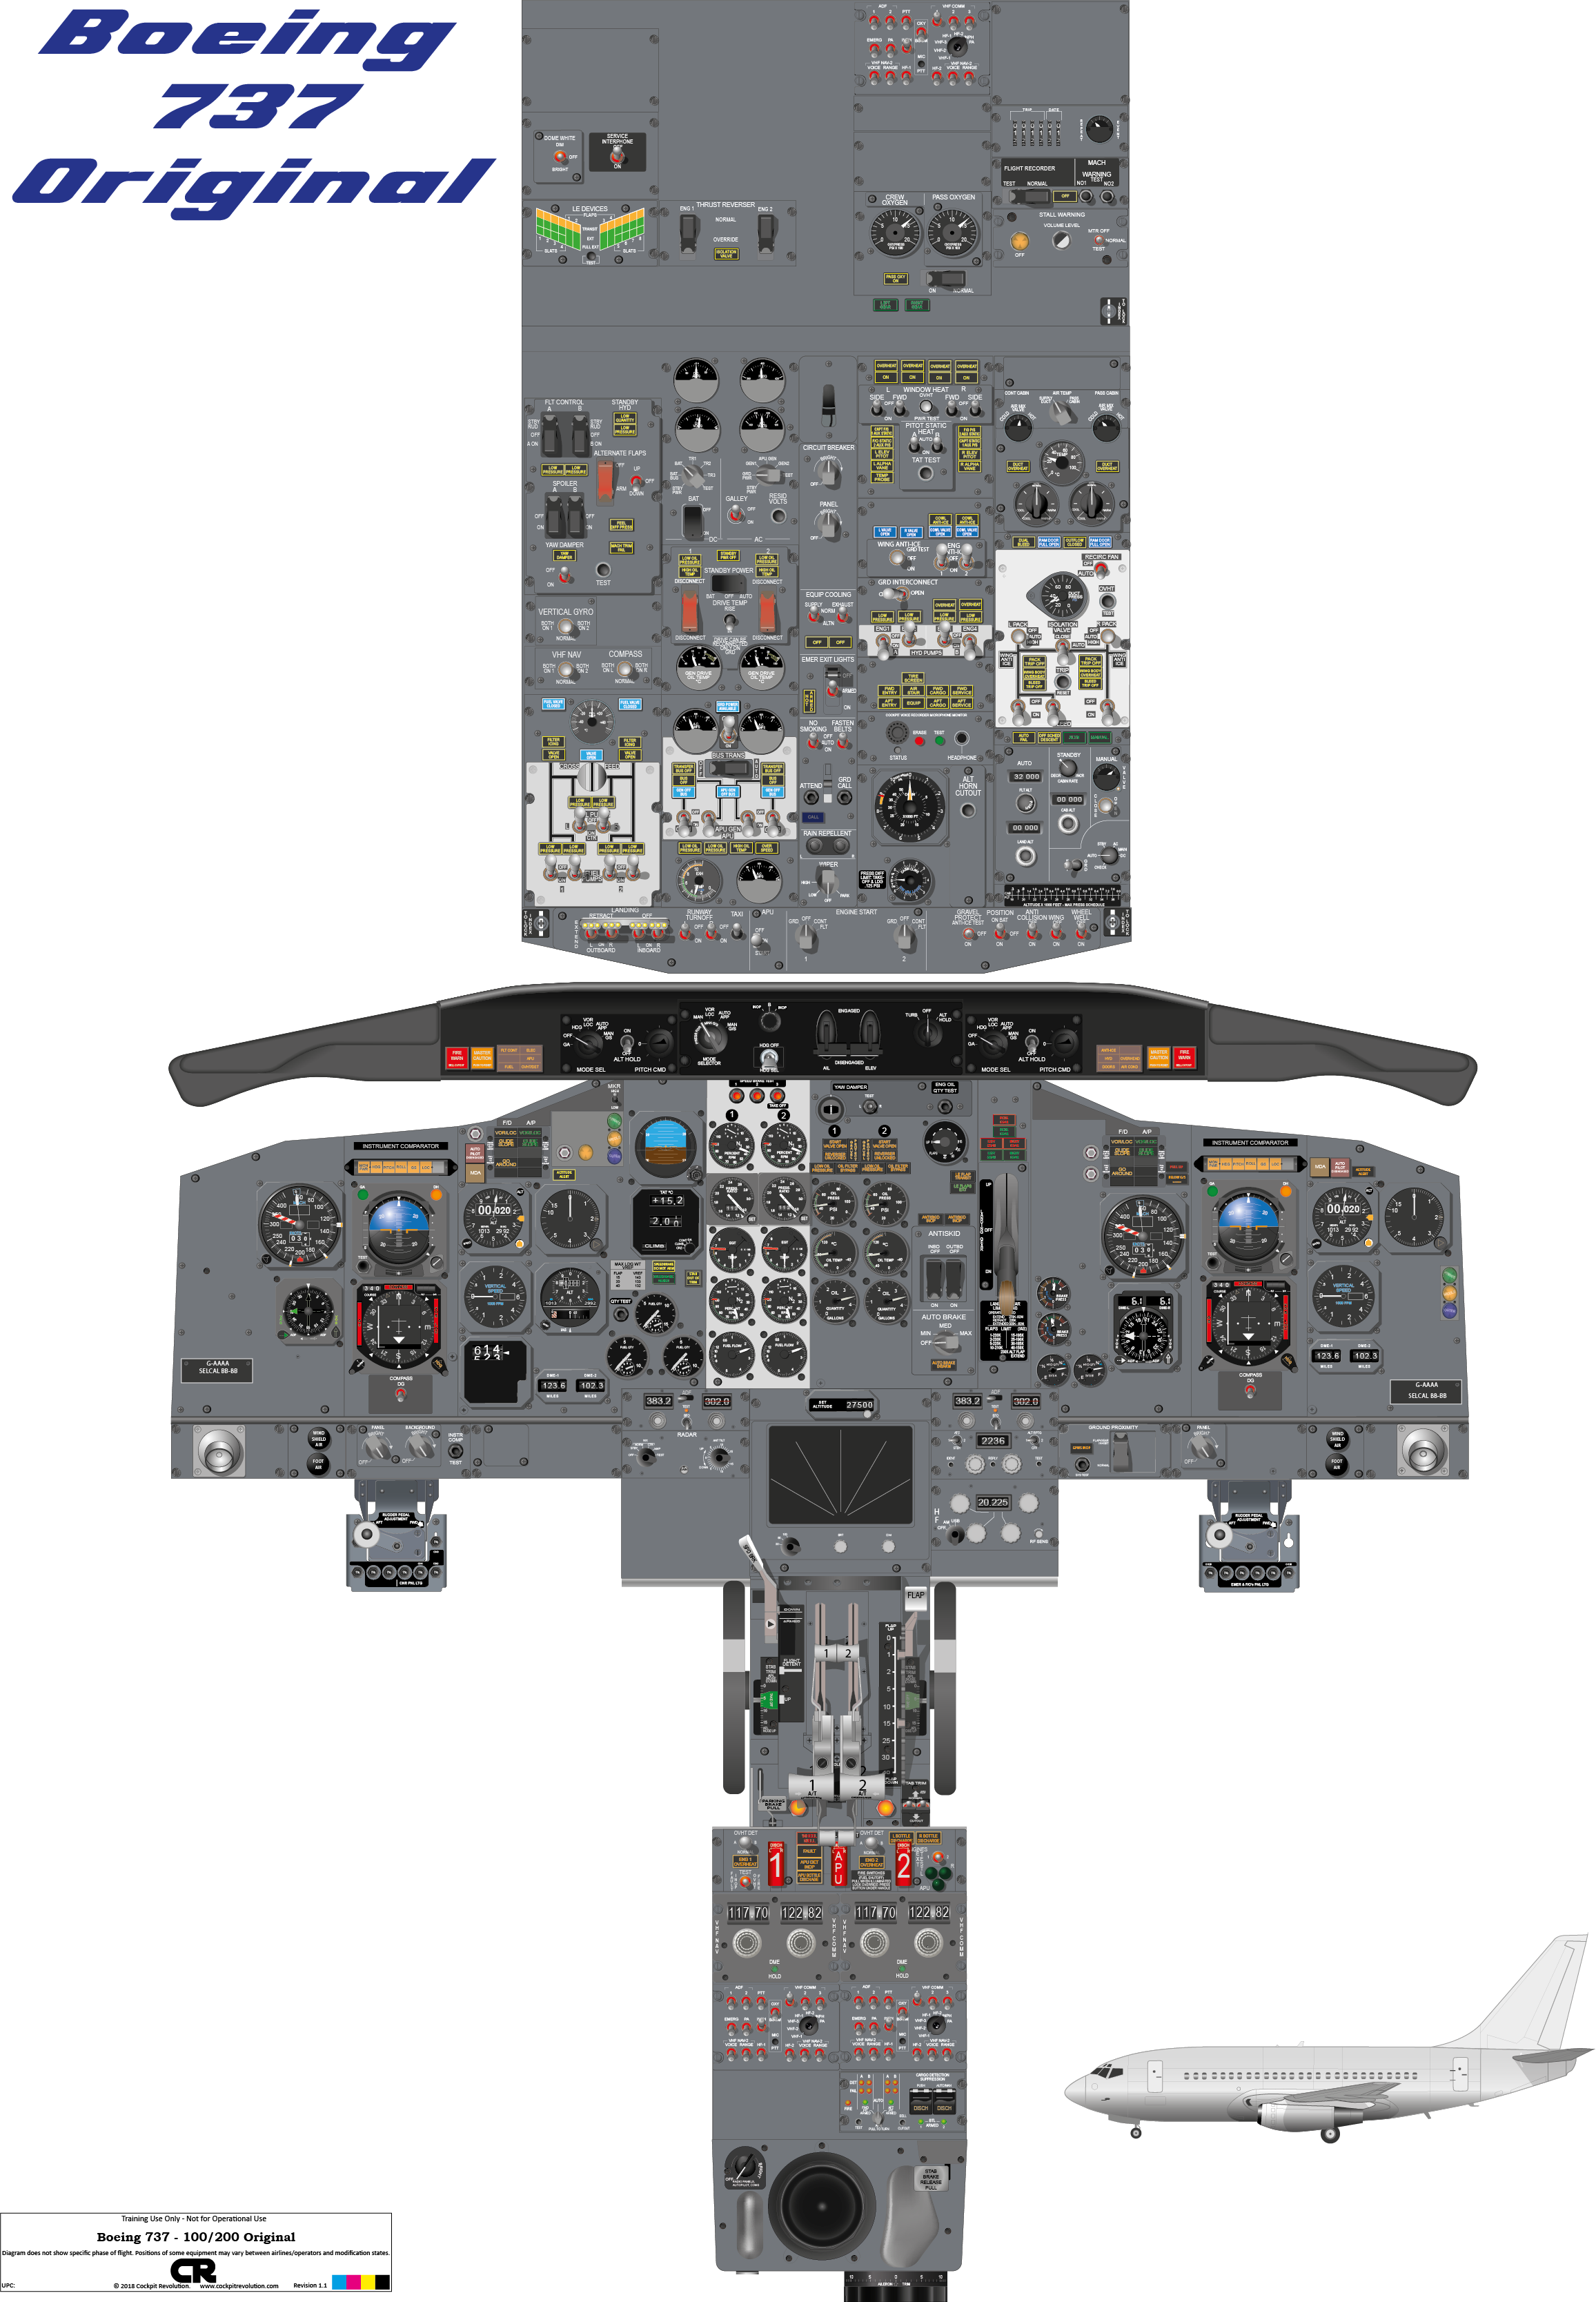 Cockpit poster of the Boeing 737-100/200 Original drawn from